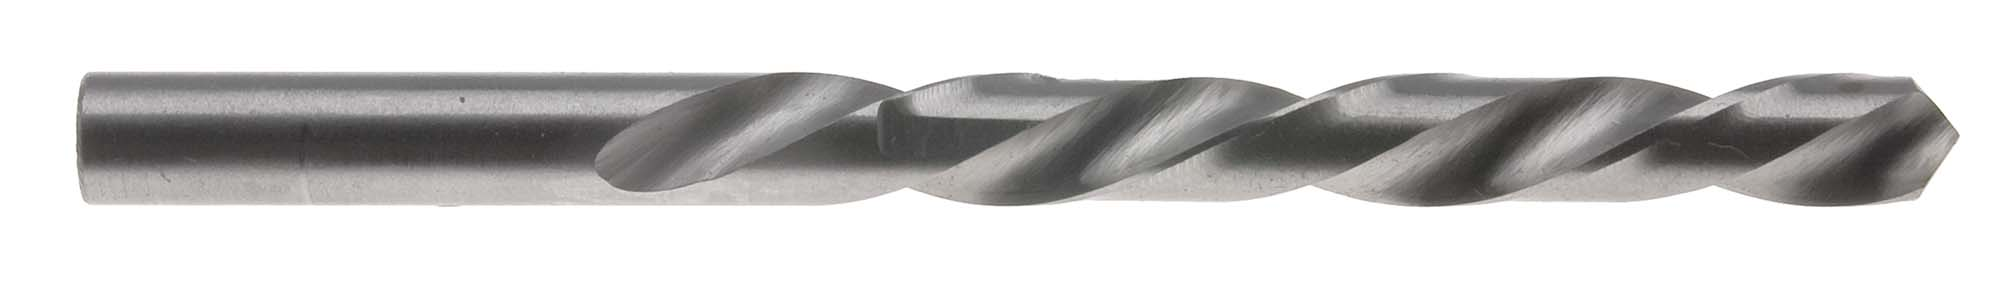 "3/64"" Left Hand Jobber Length Drill Bit, High Speed Steel"